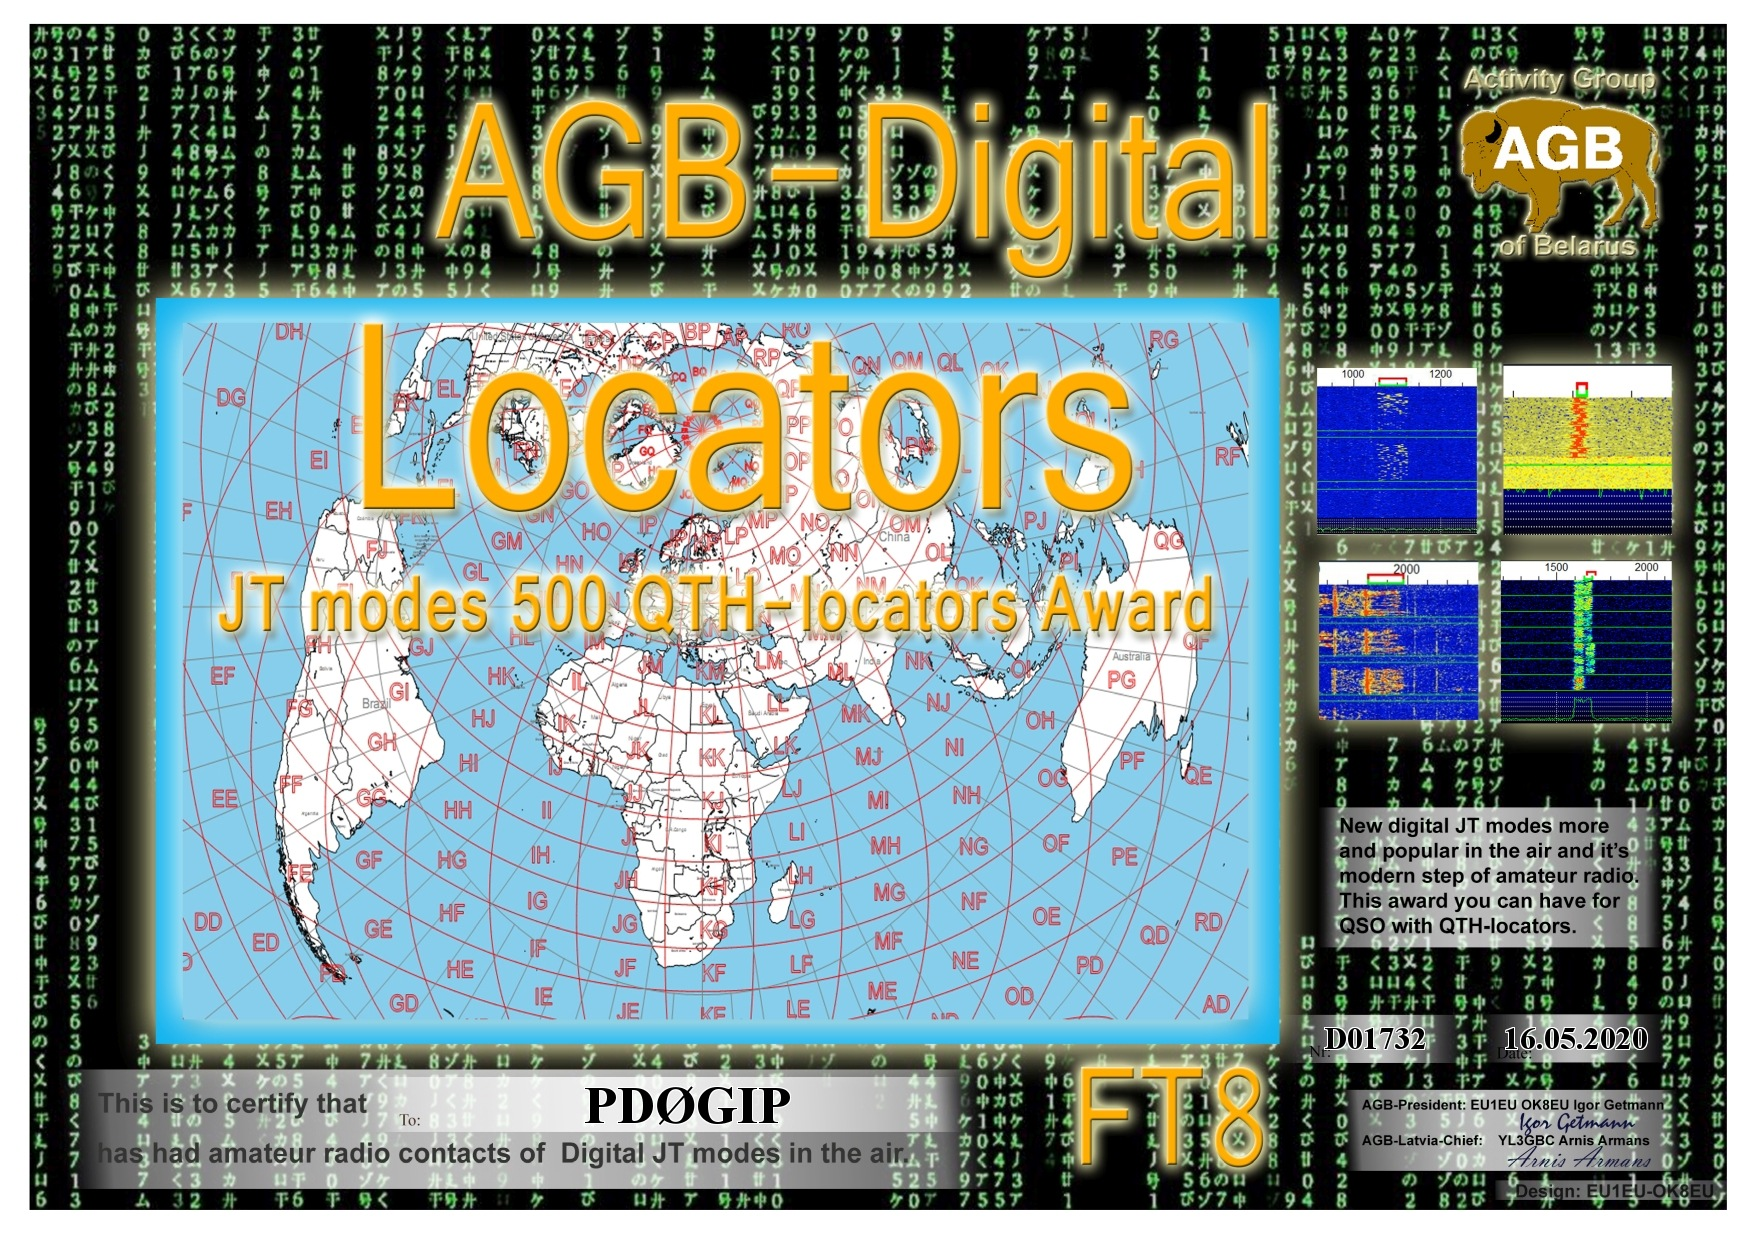 PD0GIP LOCATORS FT8 500 AGB